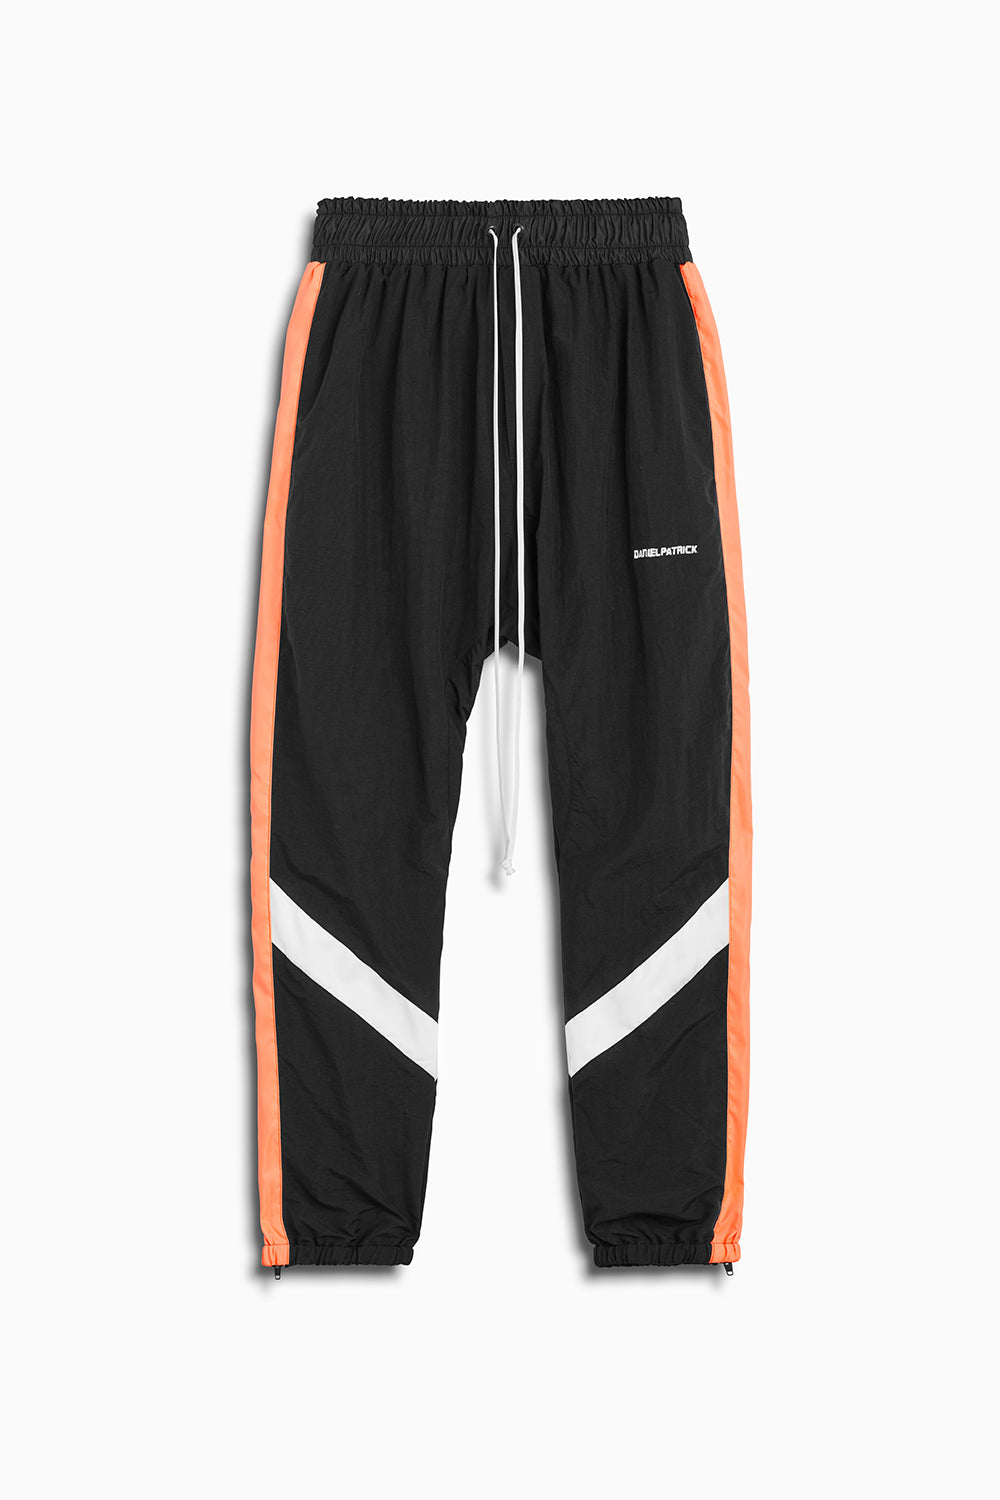 2019 parachute track pant in black/coral/ivory by daniel patrick